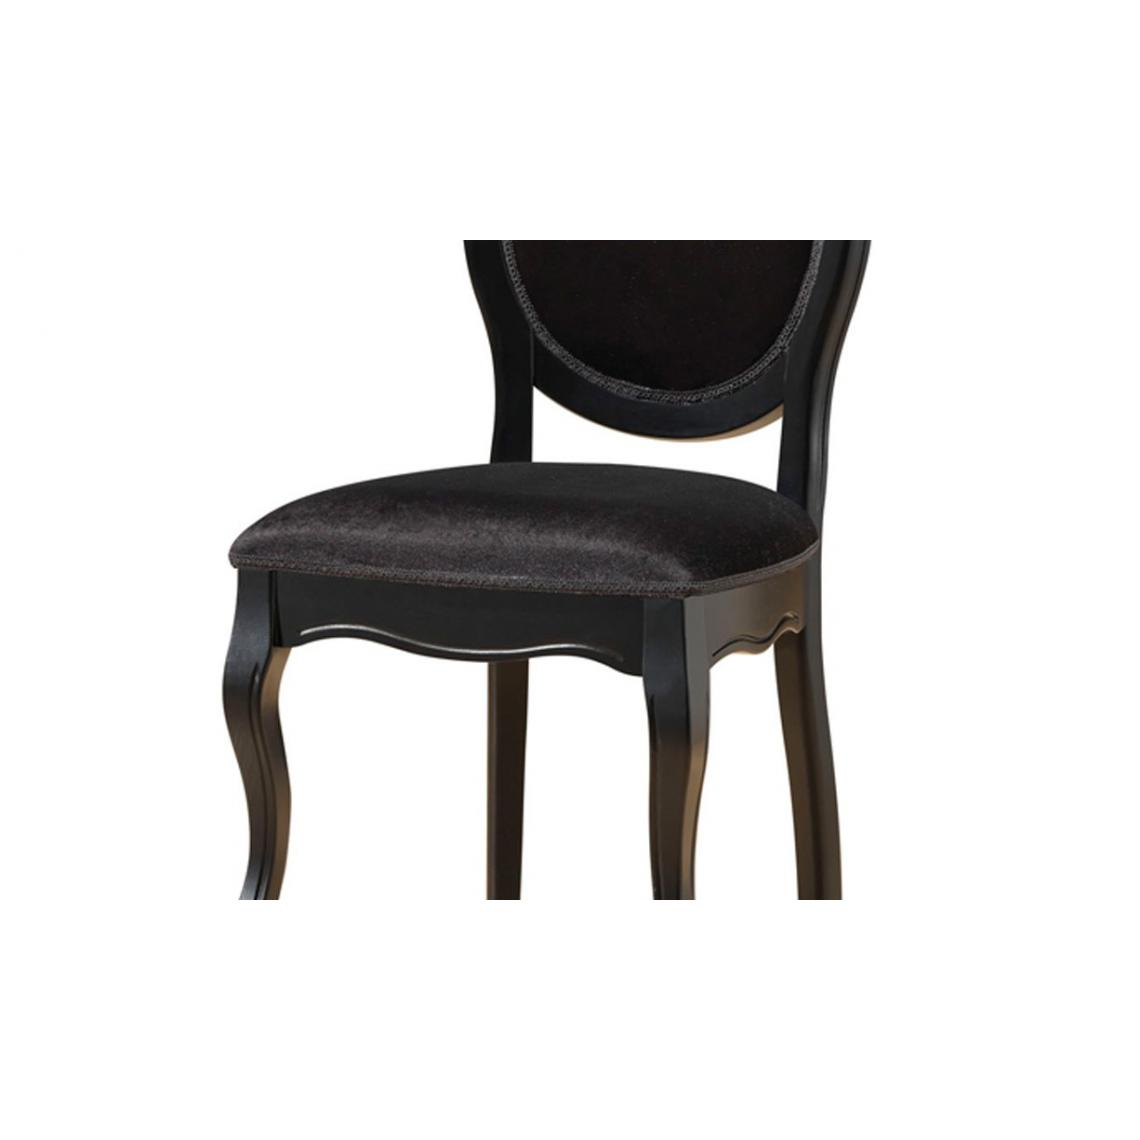 lot de 2 chaises m daillon noires antoinette 3suisses. Black Bedroom Furniture Sets. Home Design Ideas